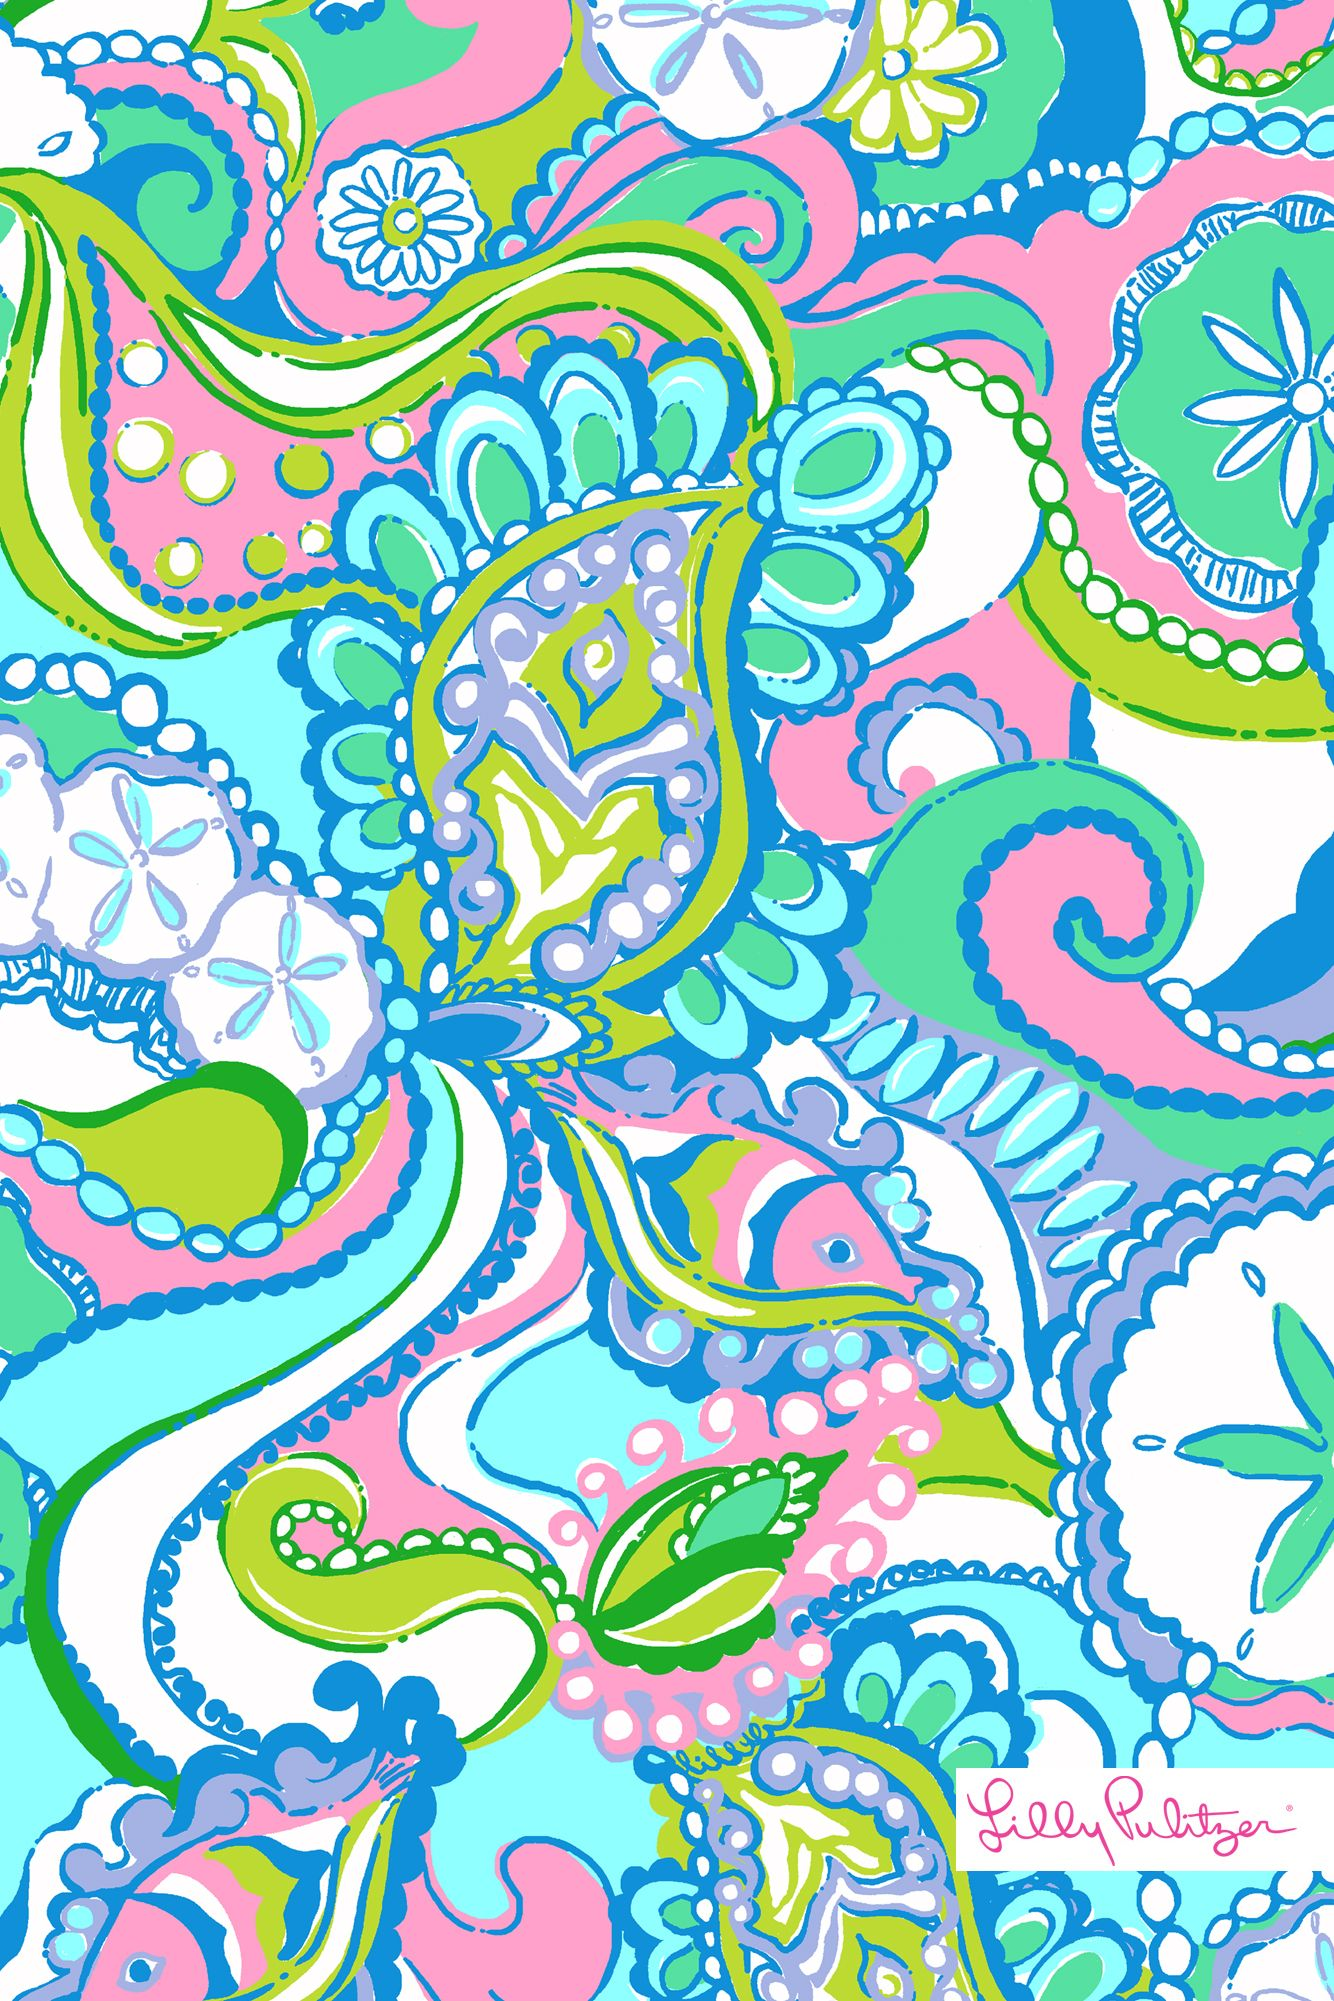 Lilly Pulitzer Patterns Let There Be Silence While This Lilly Pulitzer Print Does The